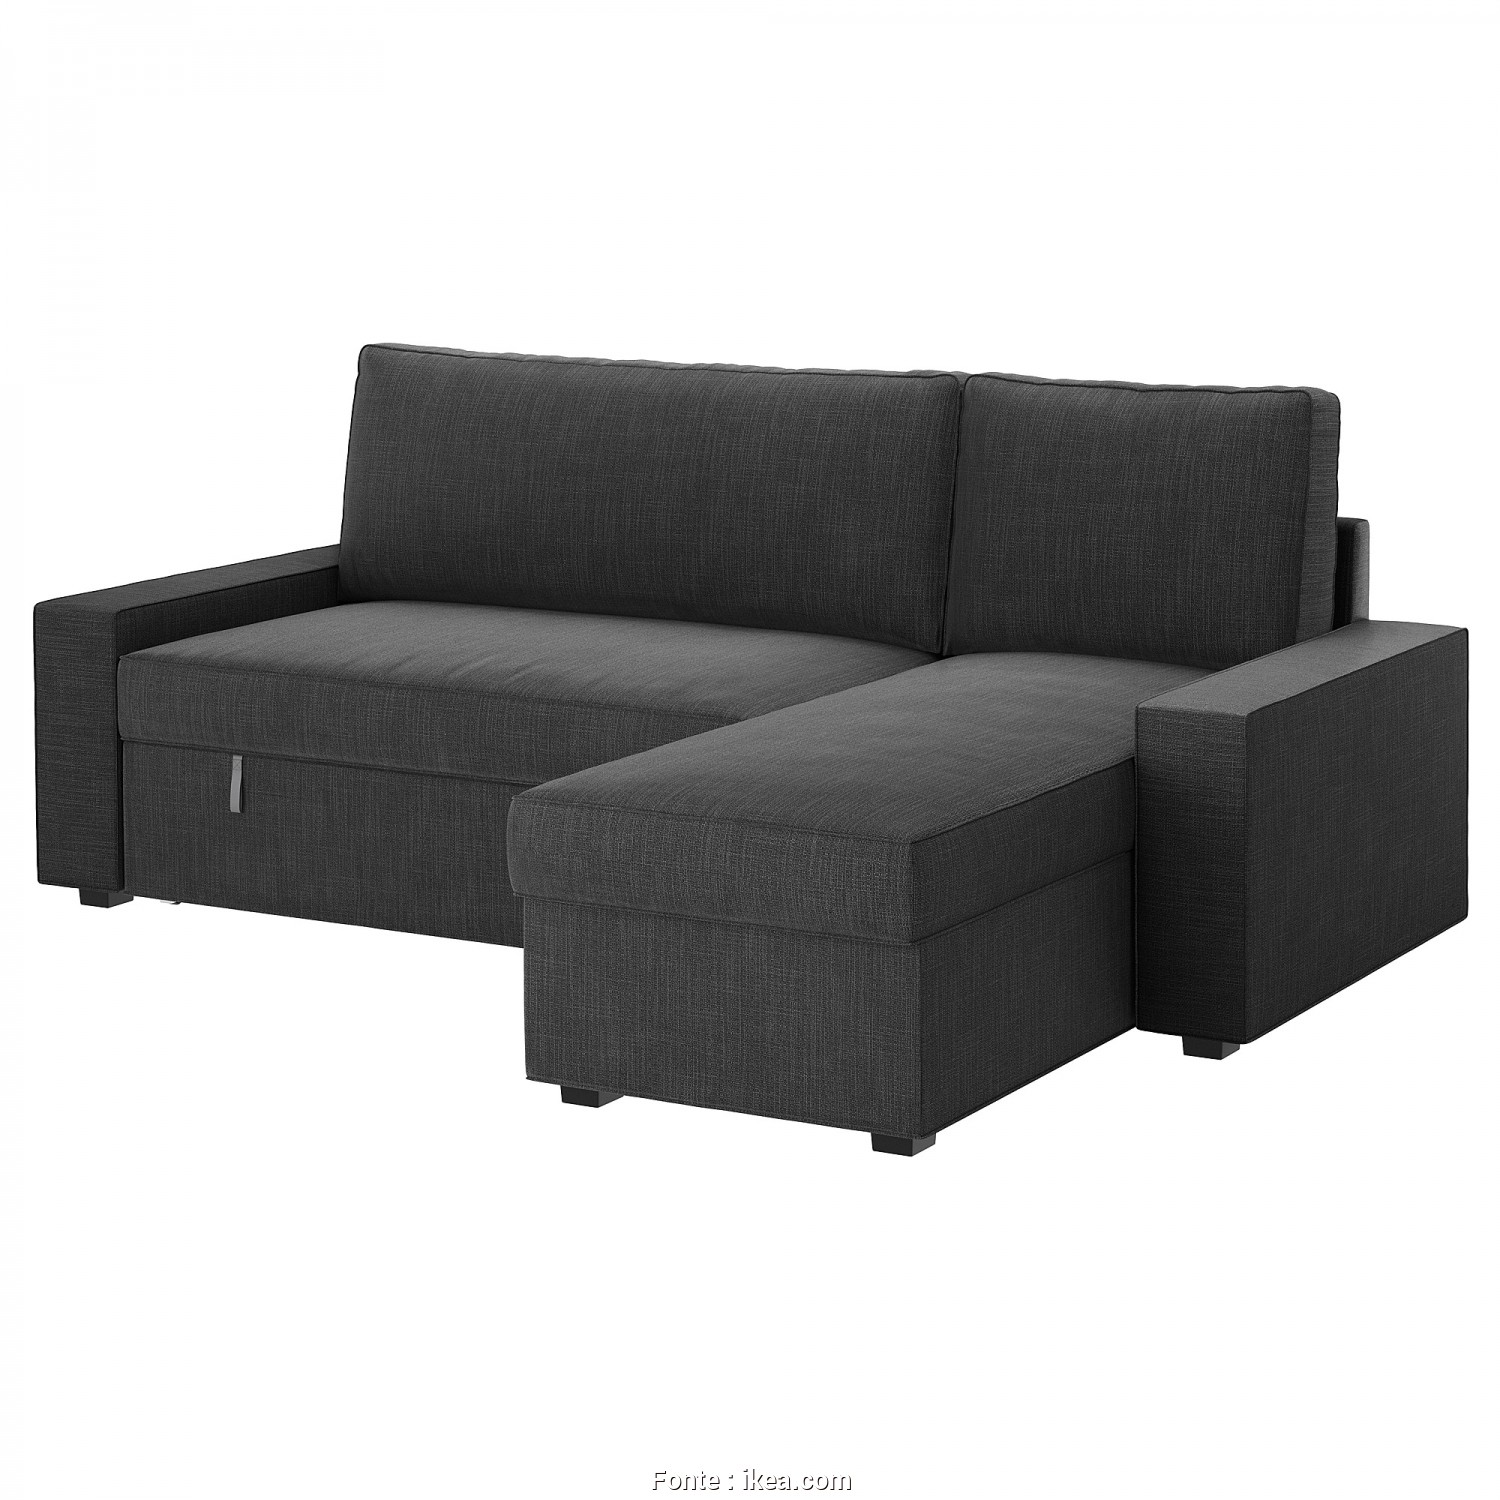 Ikea Vilasund Kanepe, Buono VILASUND Sofa, With Chaise Longue Hillared Anthracite